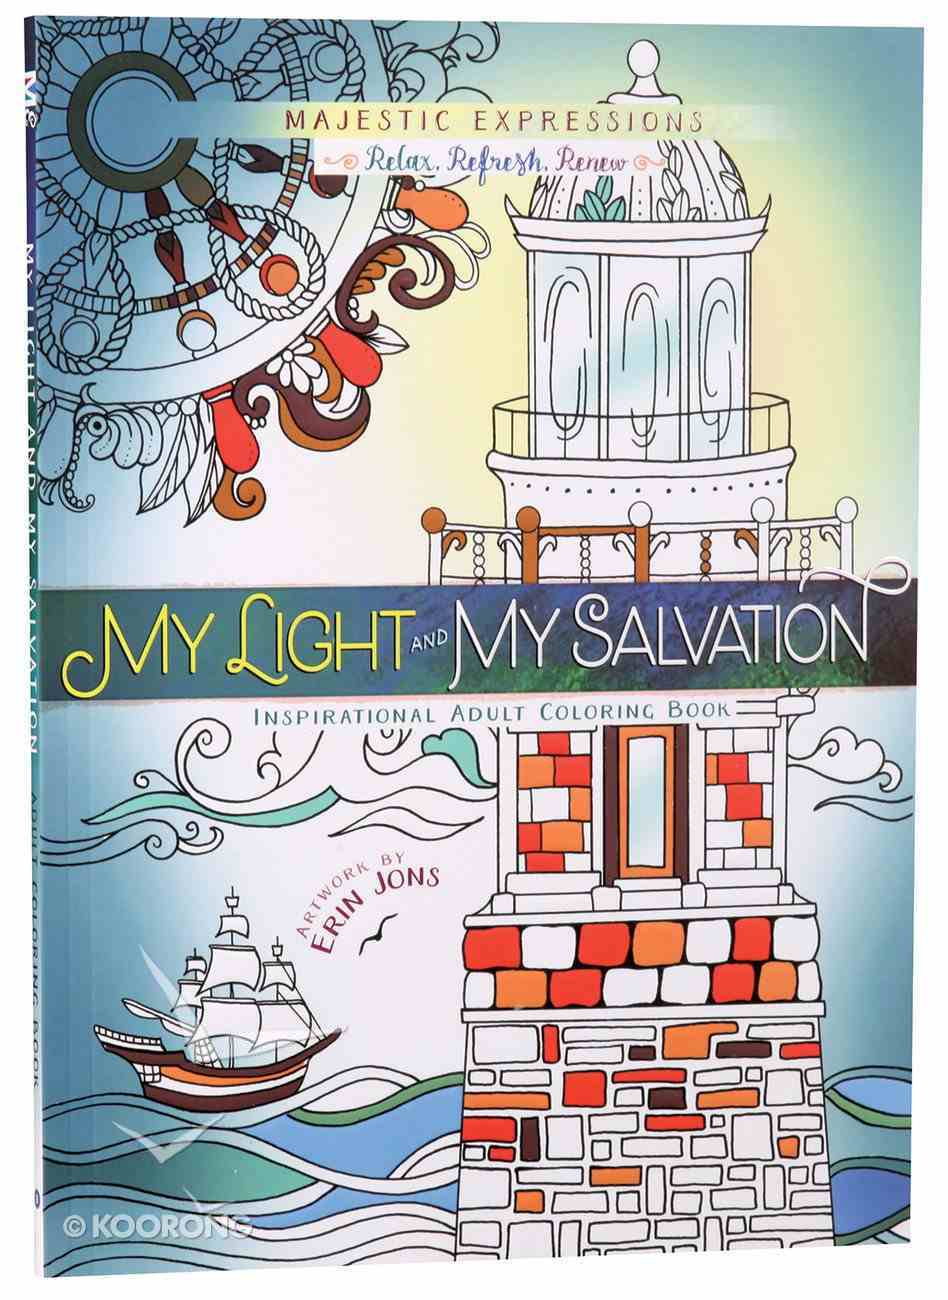 My Light & My Salvation (Majestic Expressions) (Adult Coloring Books Series) Paperback